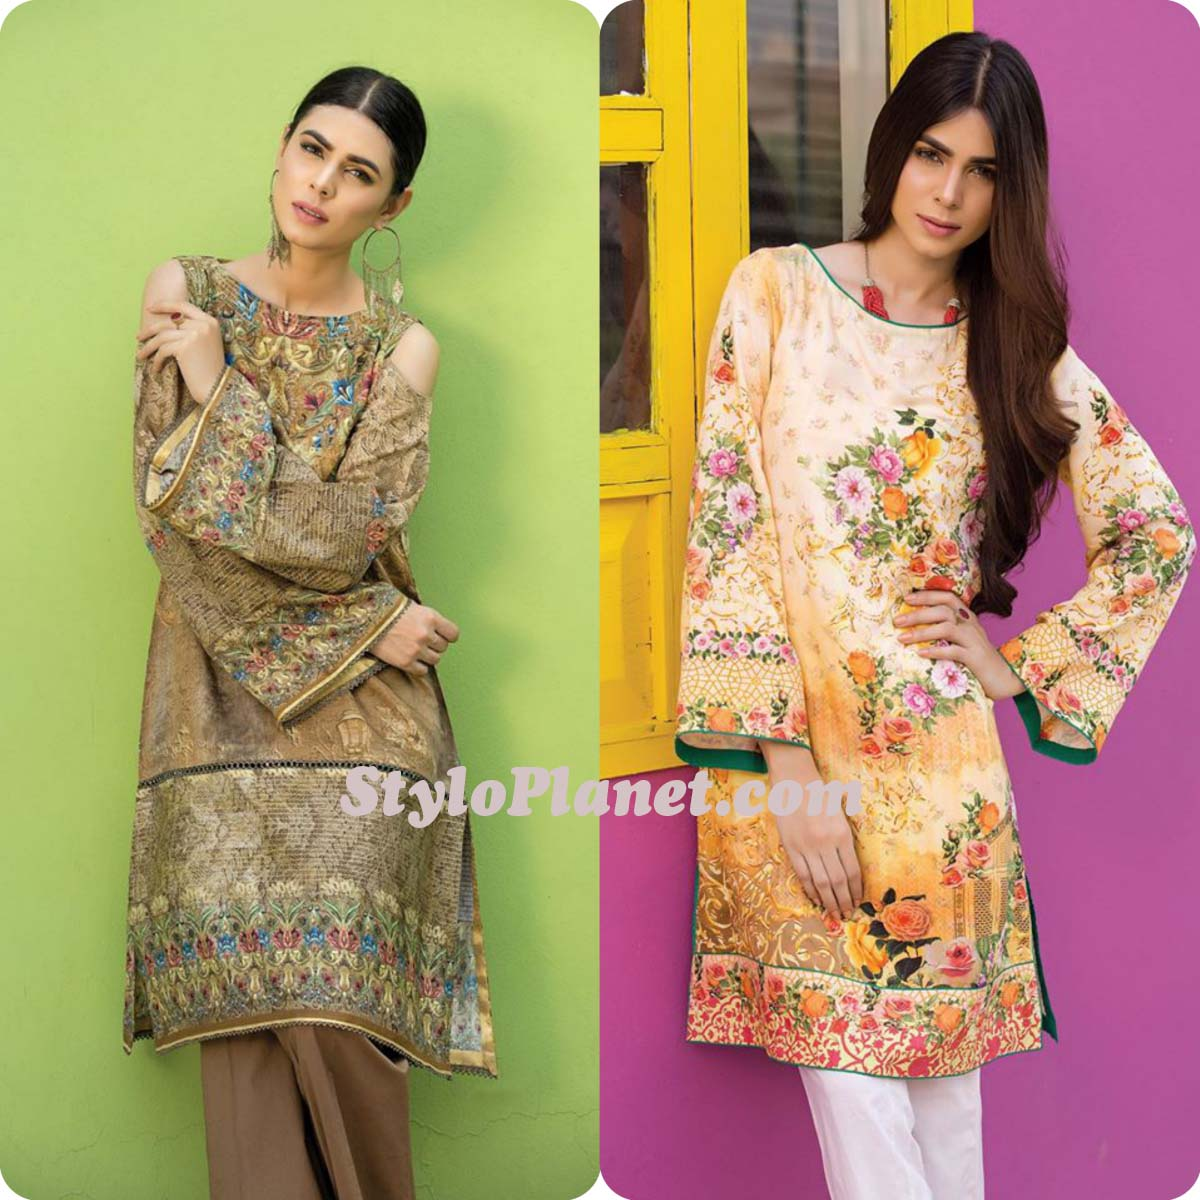 Kayseria New Eid-Ul-Adha Collection for Women 2016-2017 (2)